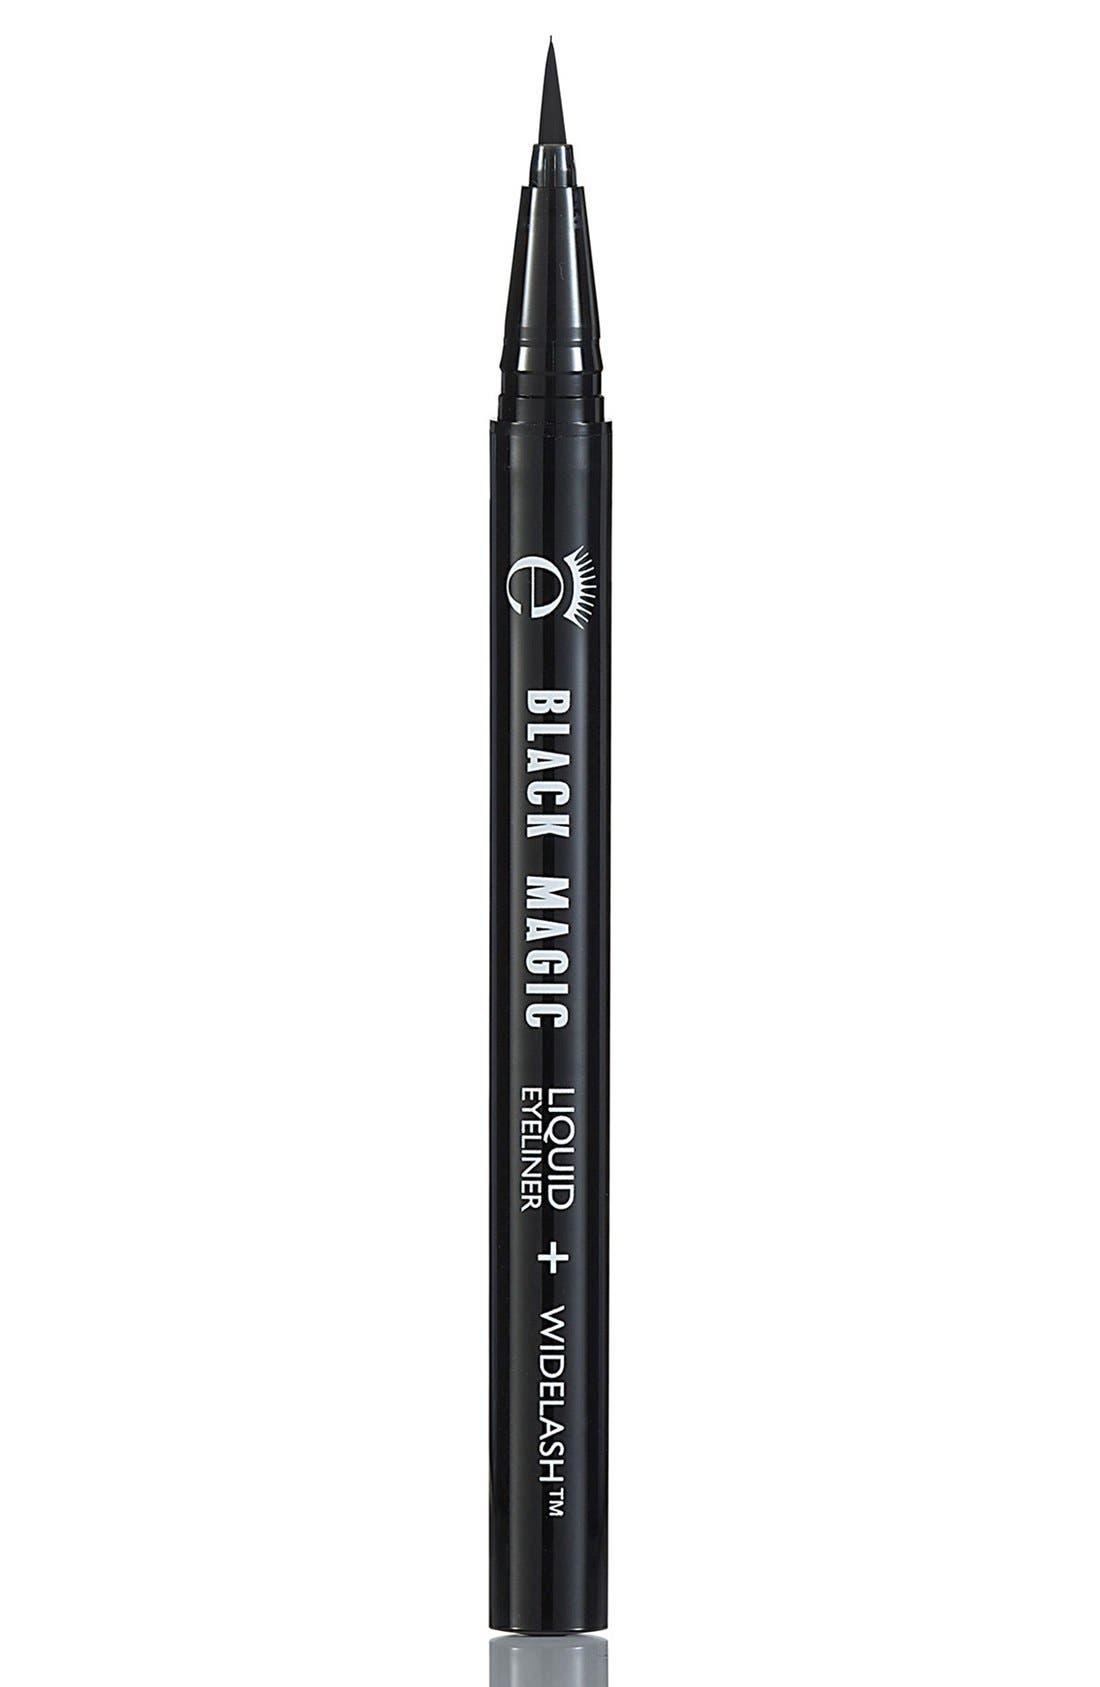 Eyeko 'Black Magic' Liquid Eyeliner